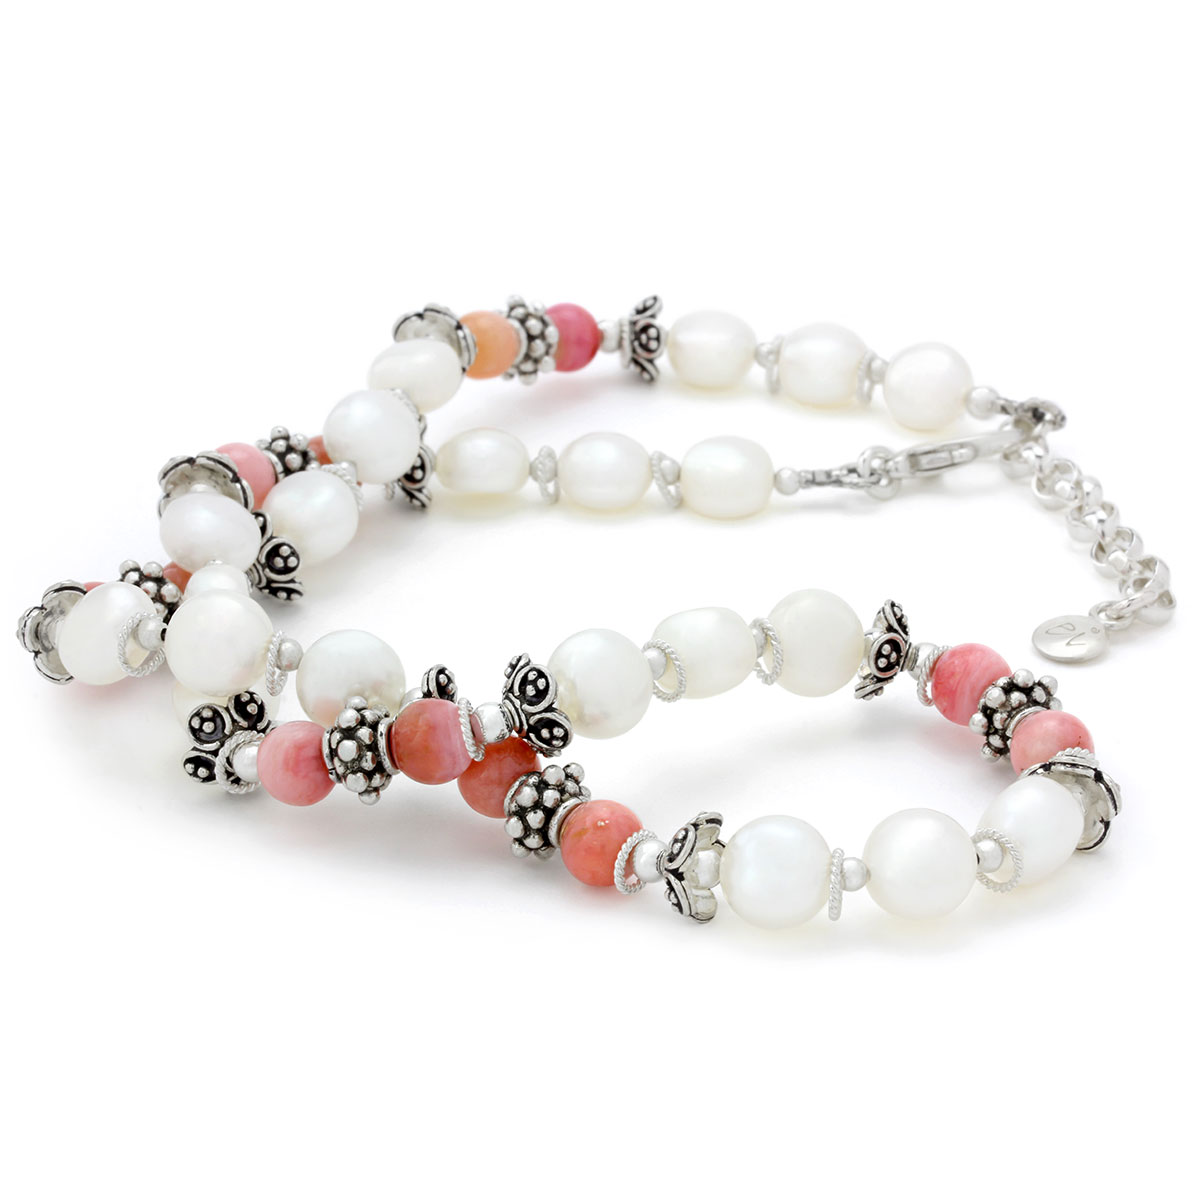 325-241-Pink Peruvian Opal & White Pearl Necklace